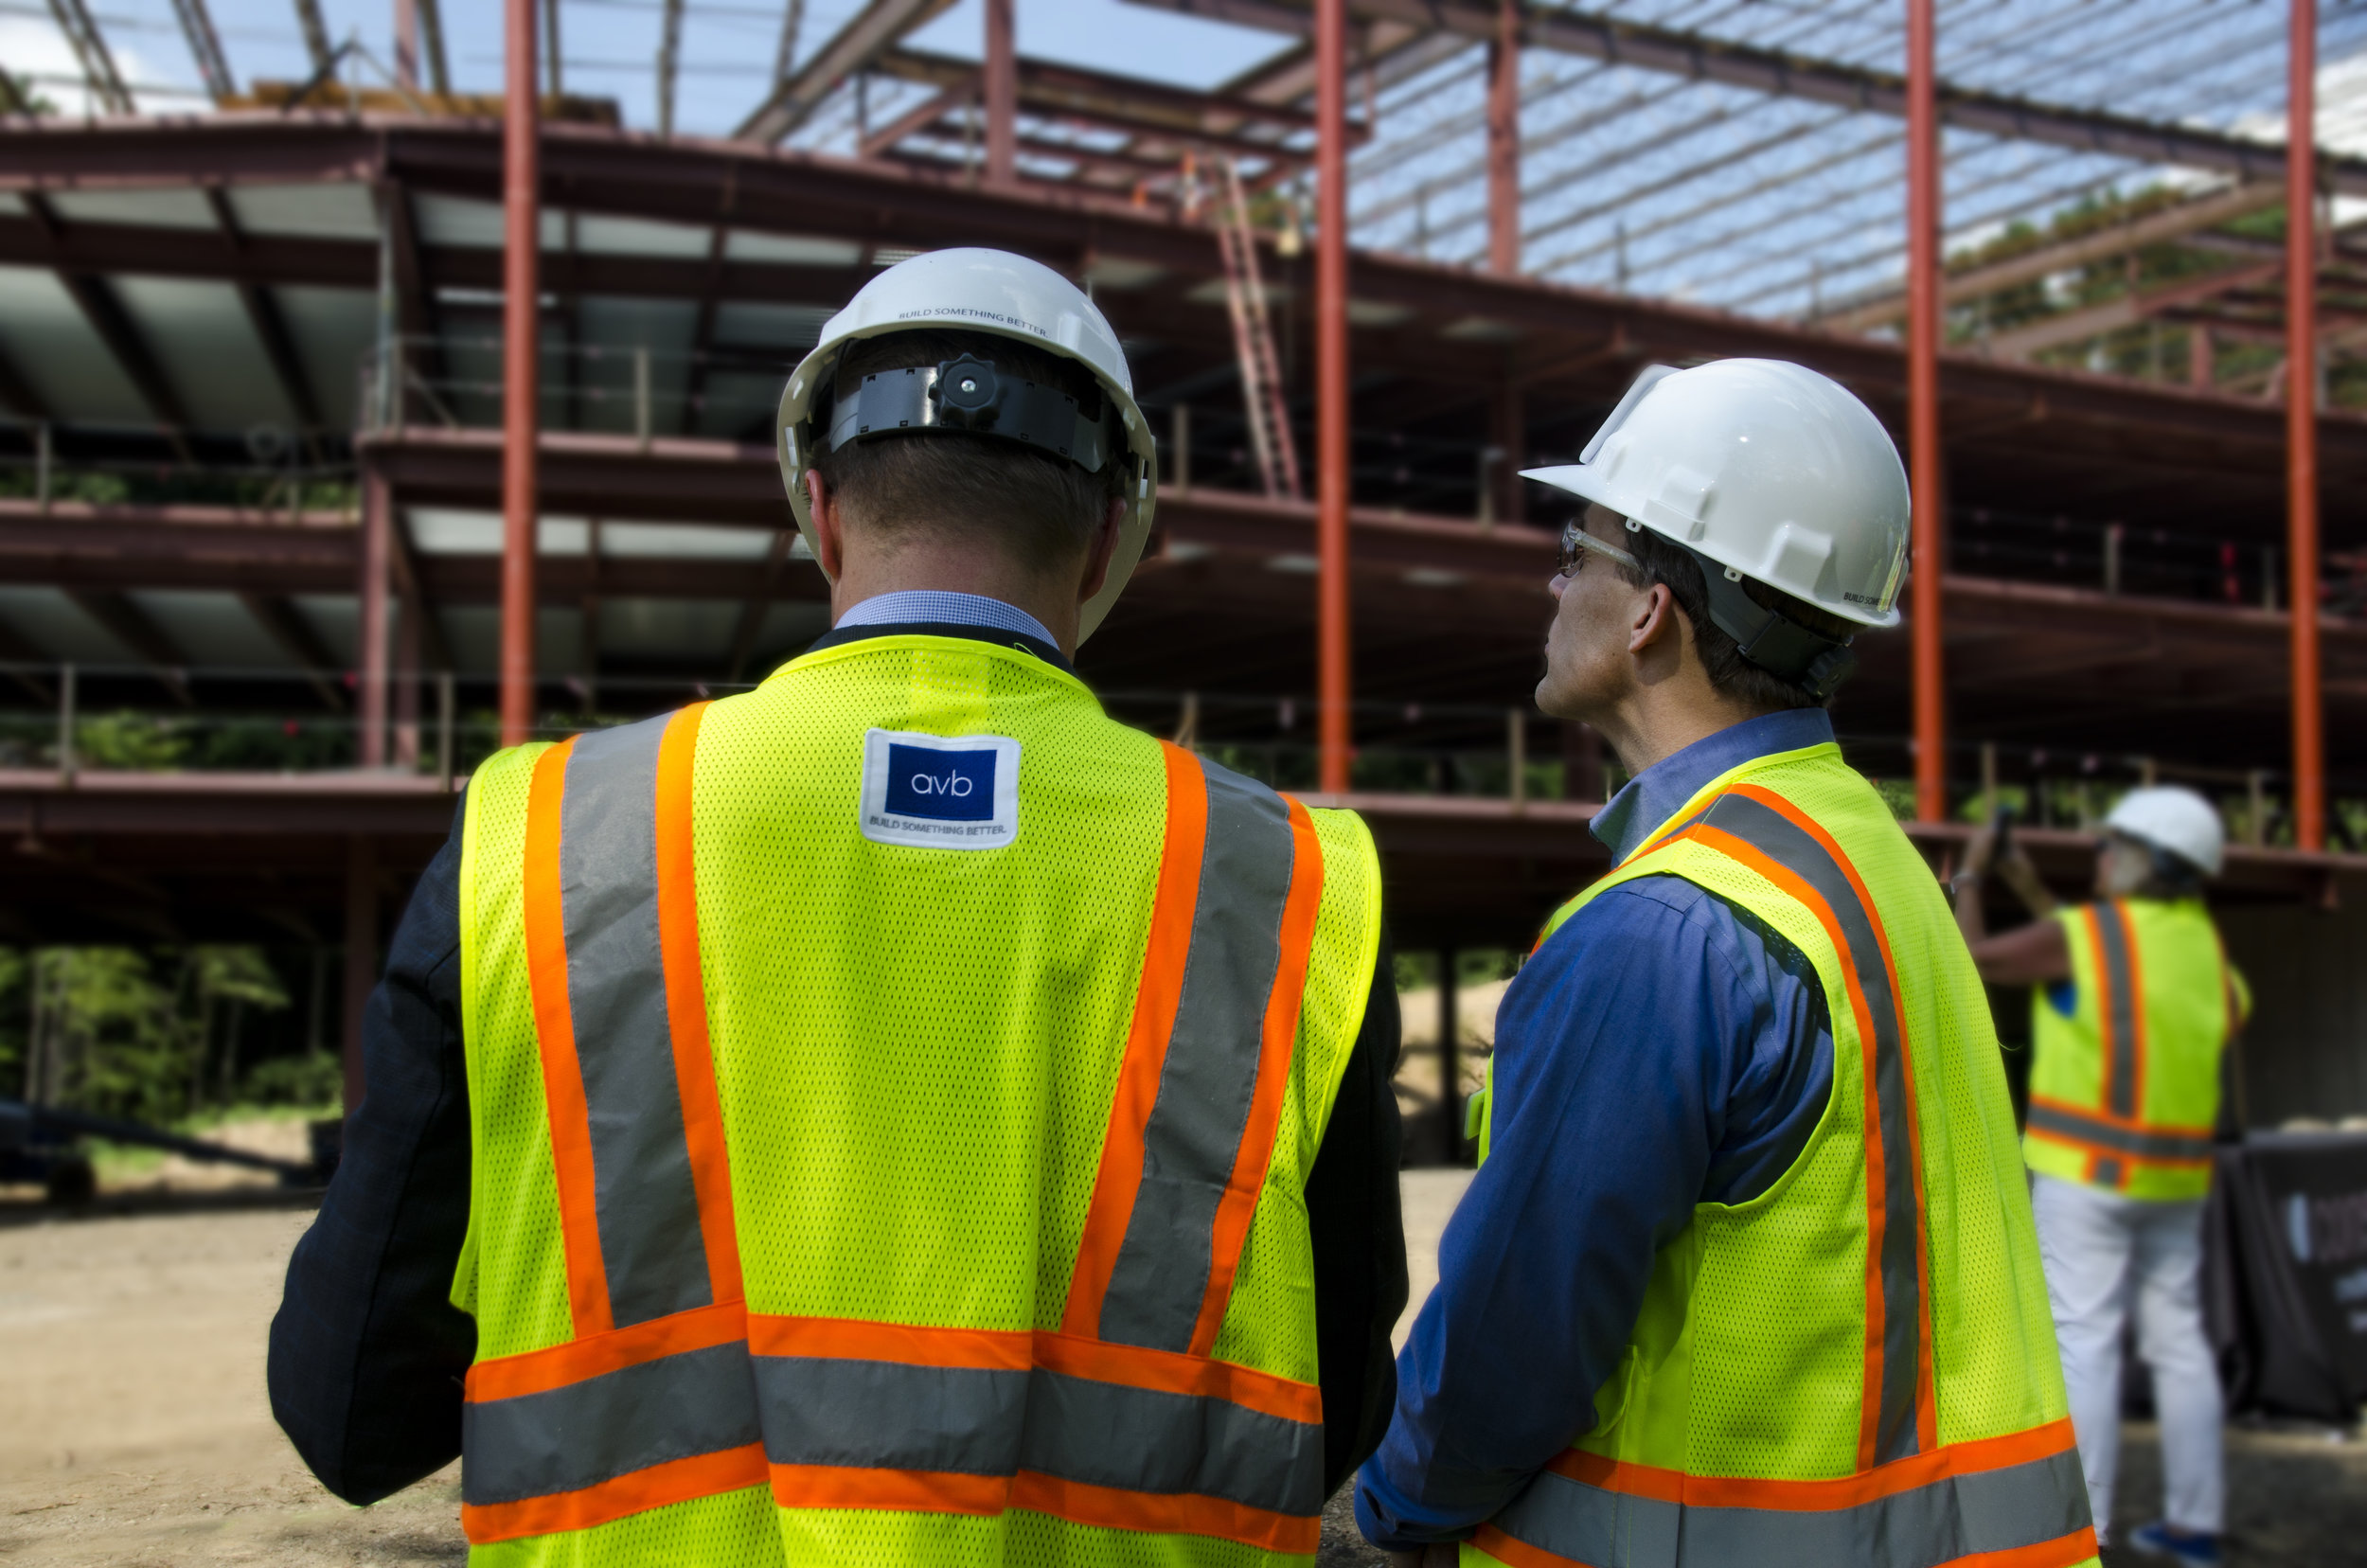 20160727_consumers_topping_out_0135.jpg